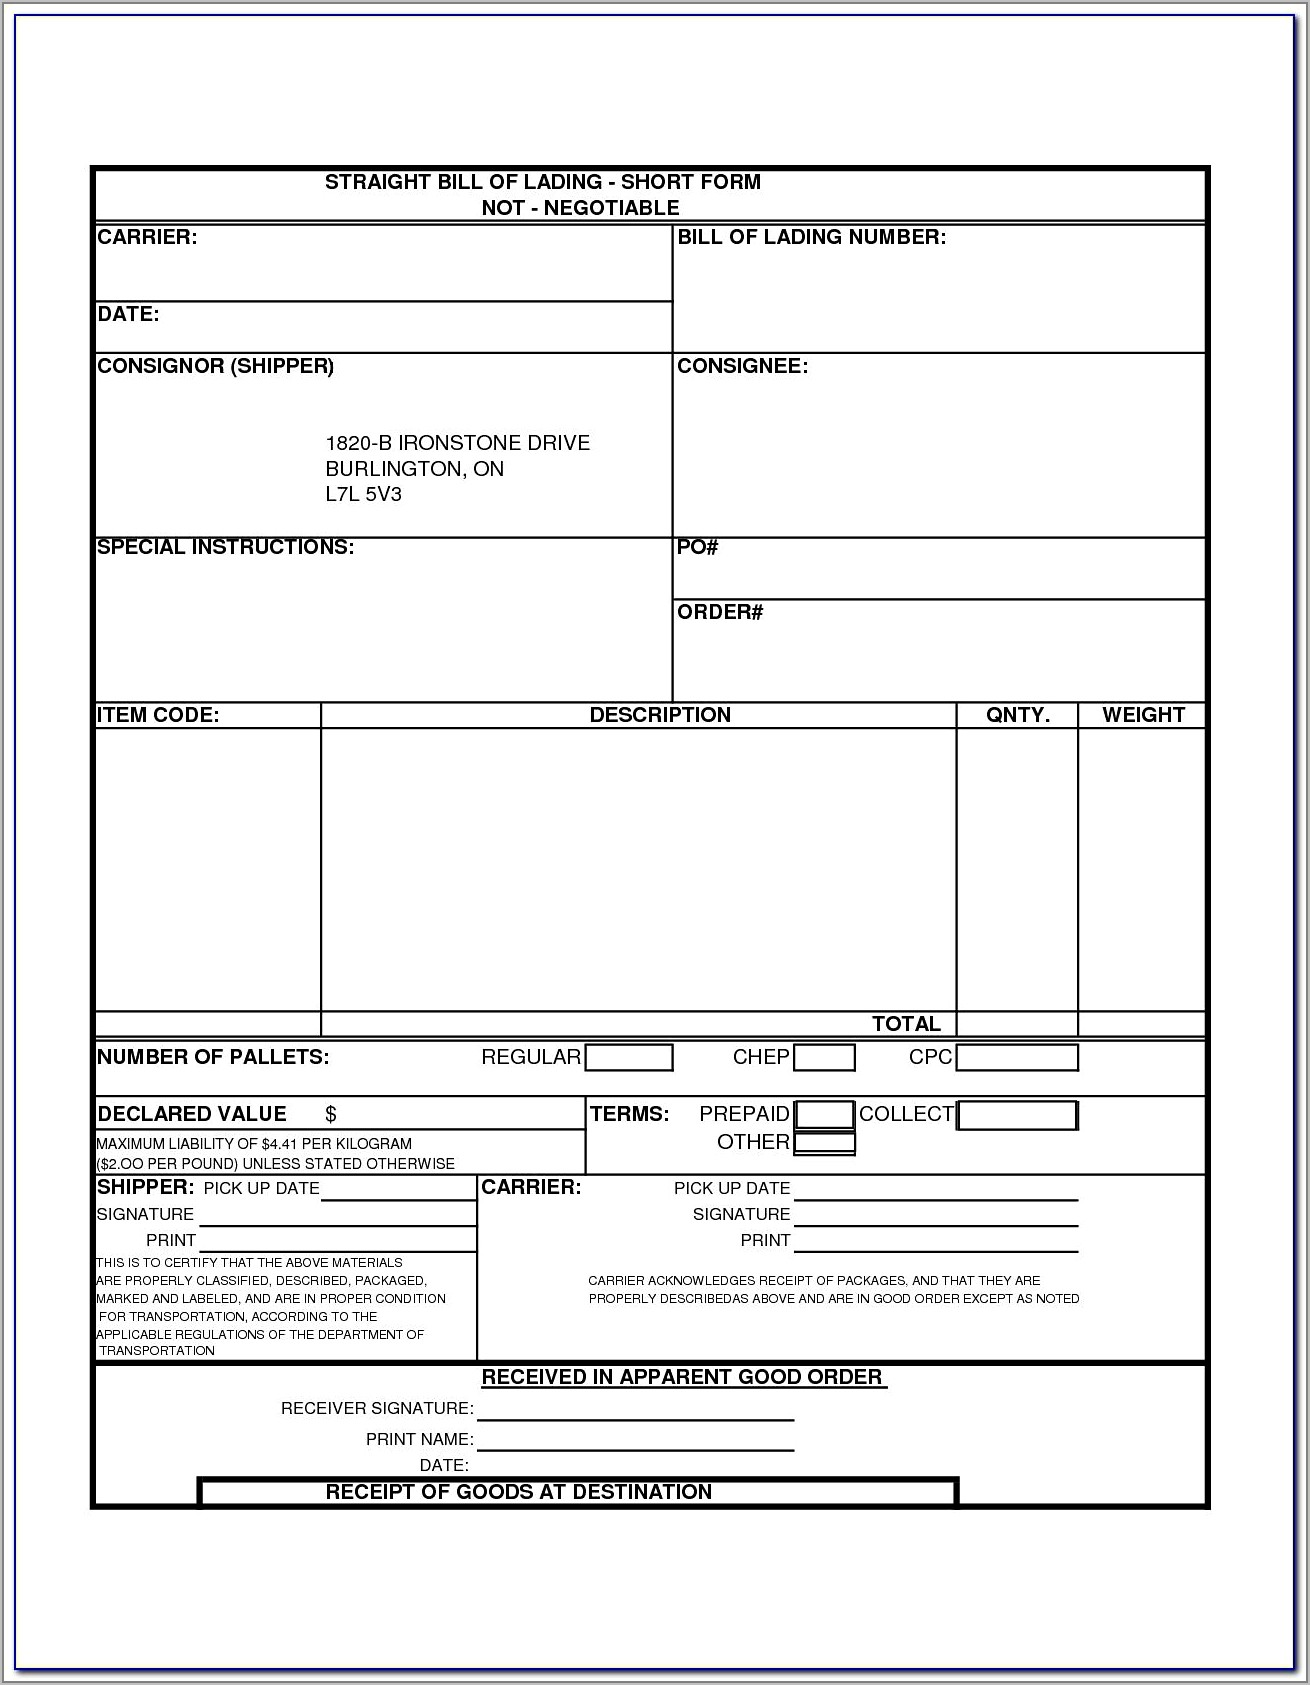 Fedex Straight Bill Of Lading Forms